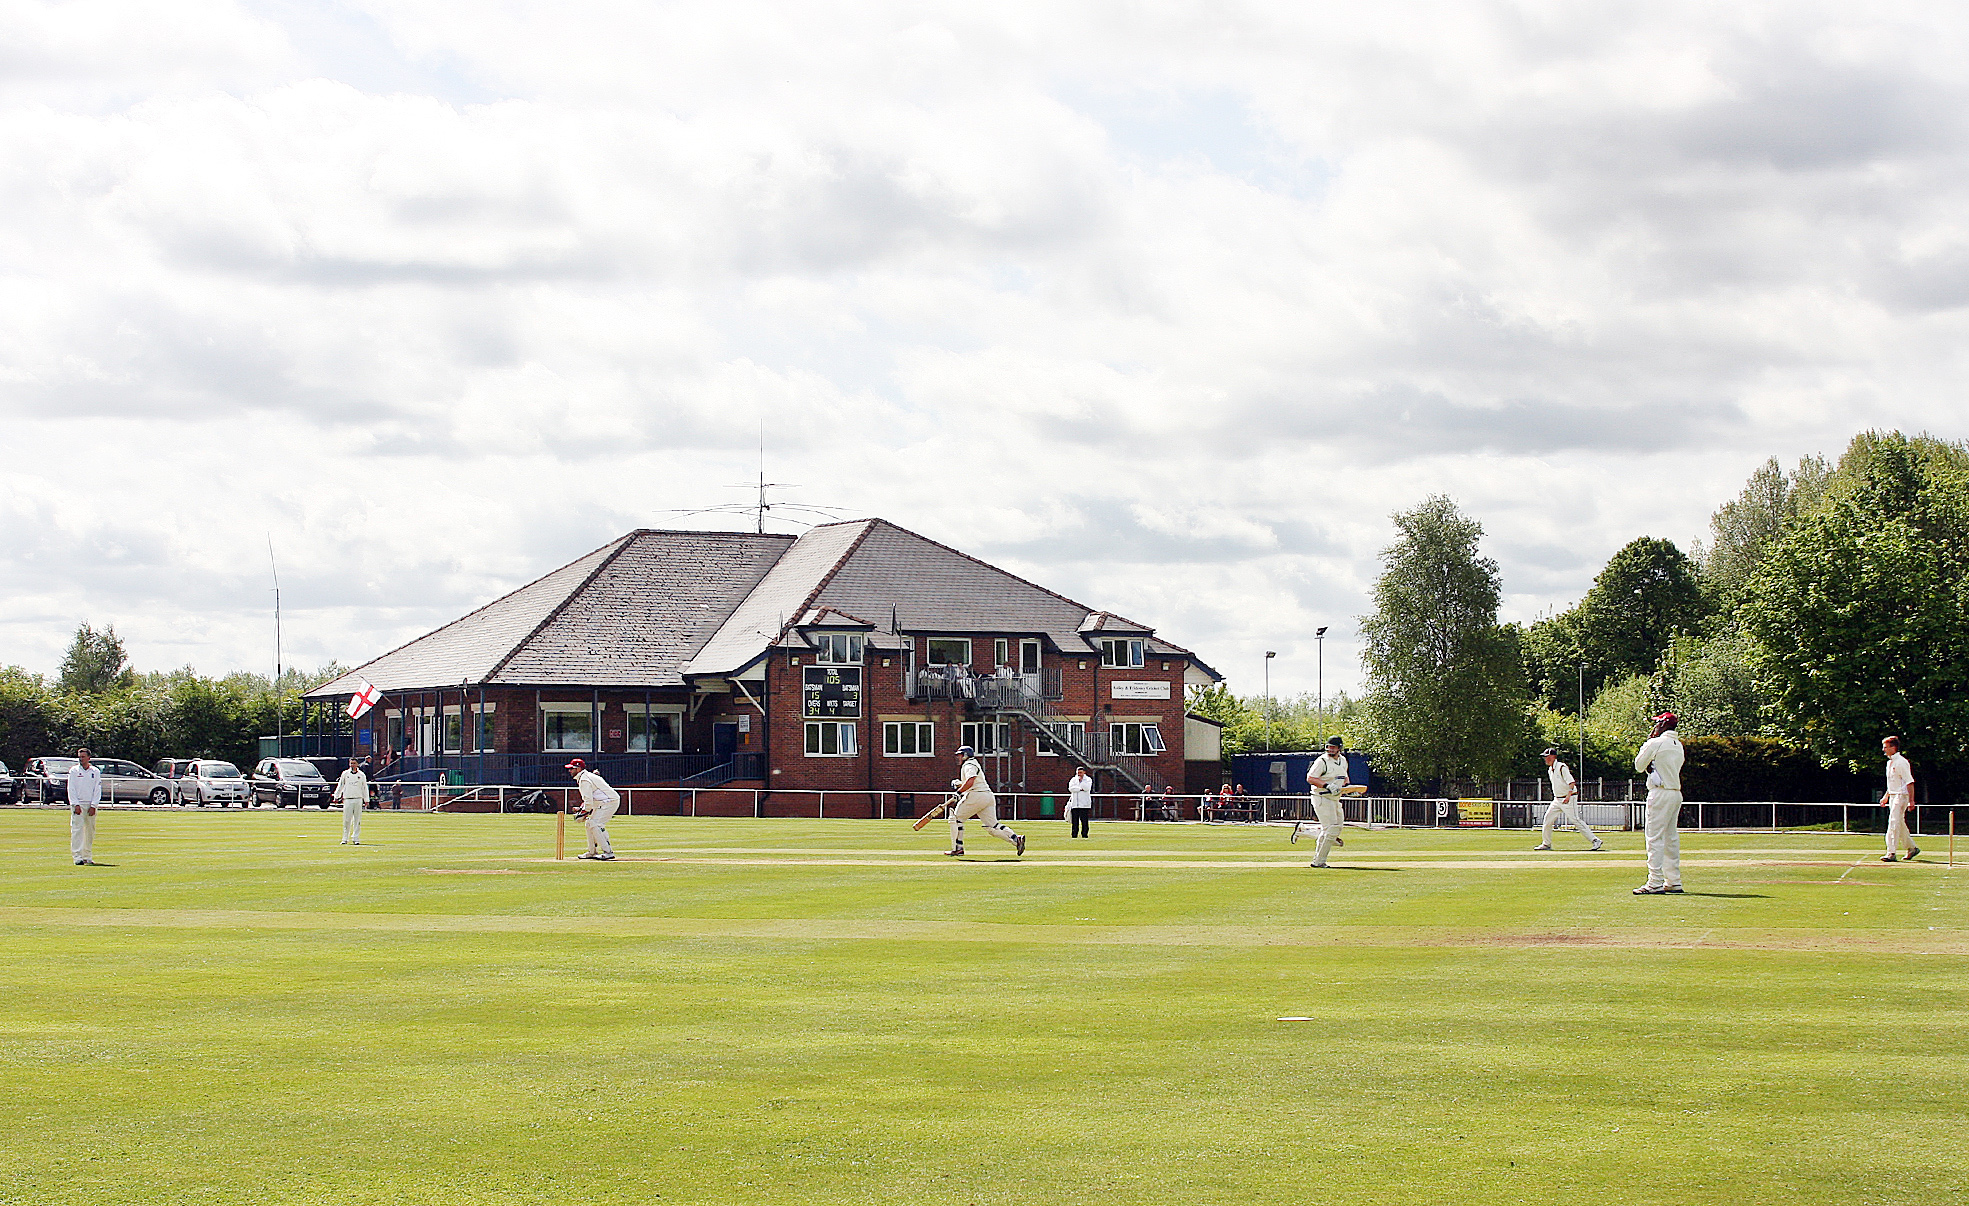 Astley and Tyldesley Cricket Club